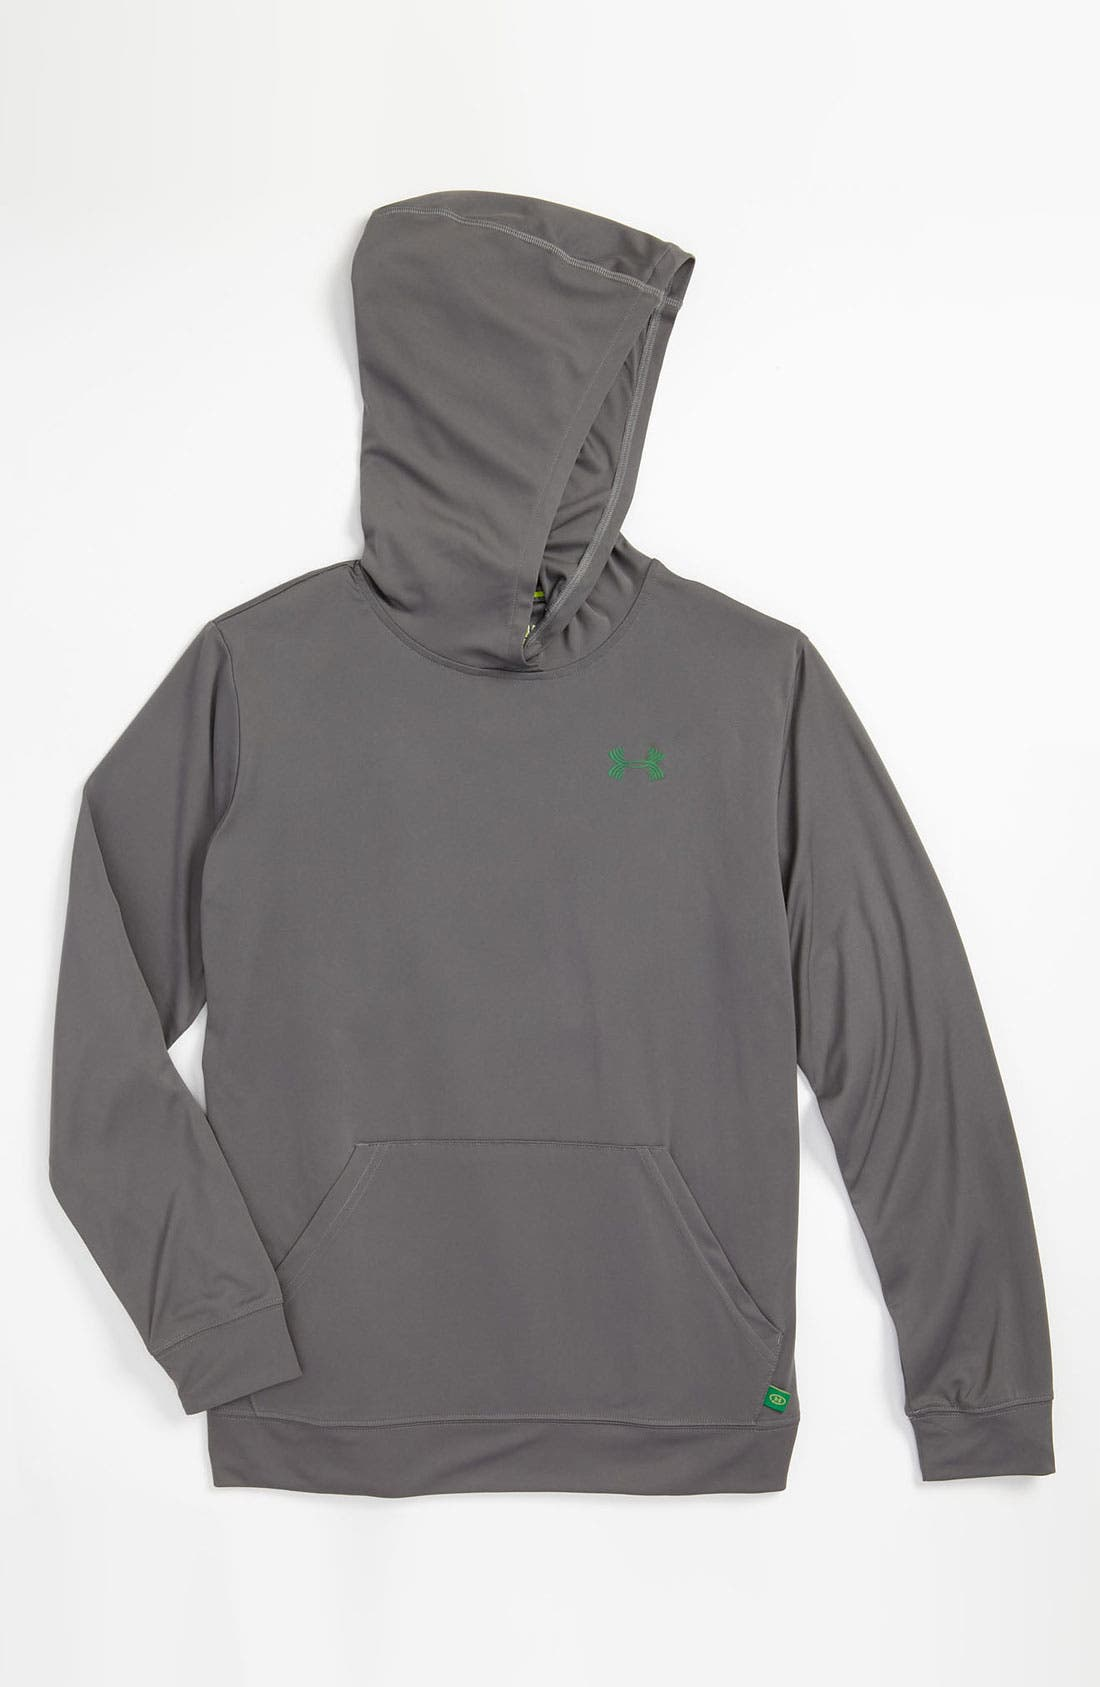 Alternate Image 1 Selected - Under Armour 'Defend Your Turf' Hoodie (Big Boys)